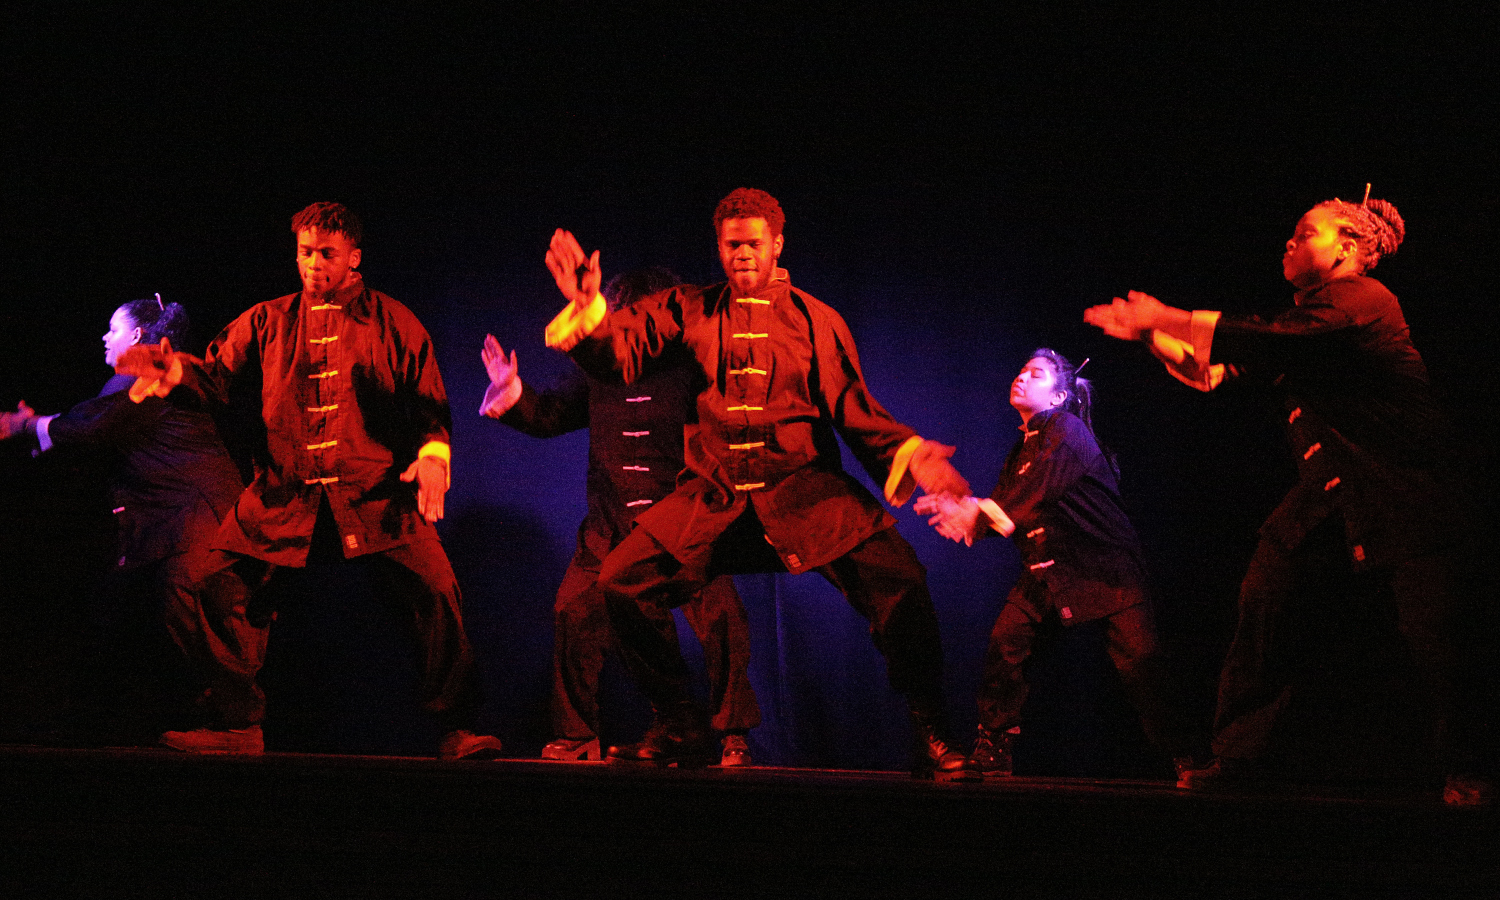 Members of the HWS HipNotiQs Dance and Step Team perform in Bartlett Theatre during the annual Lunar New Year Celebration.